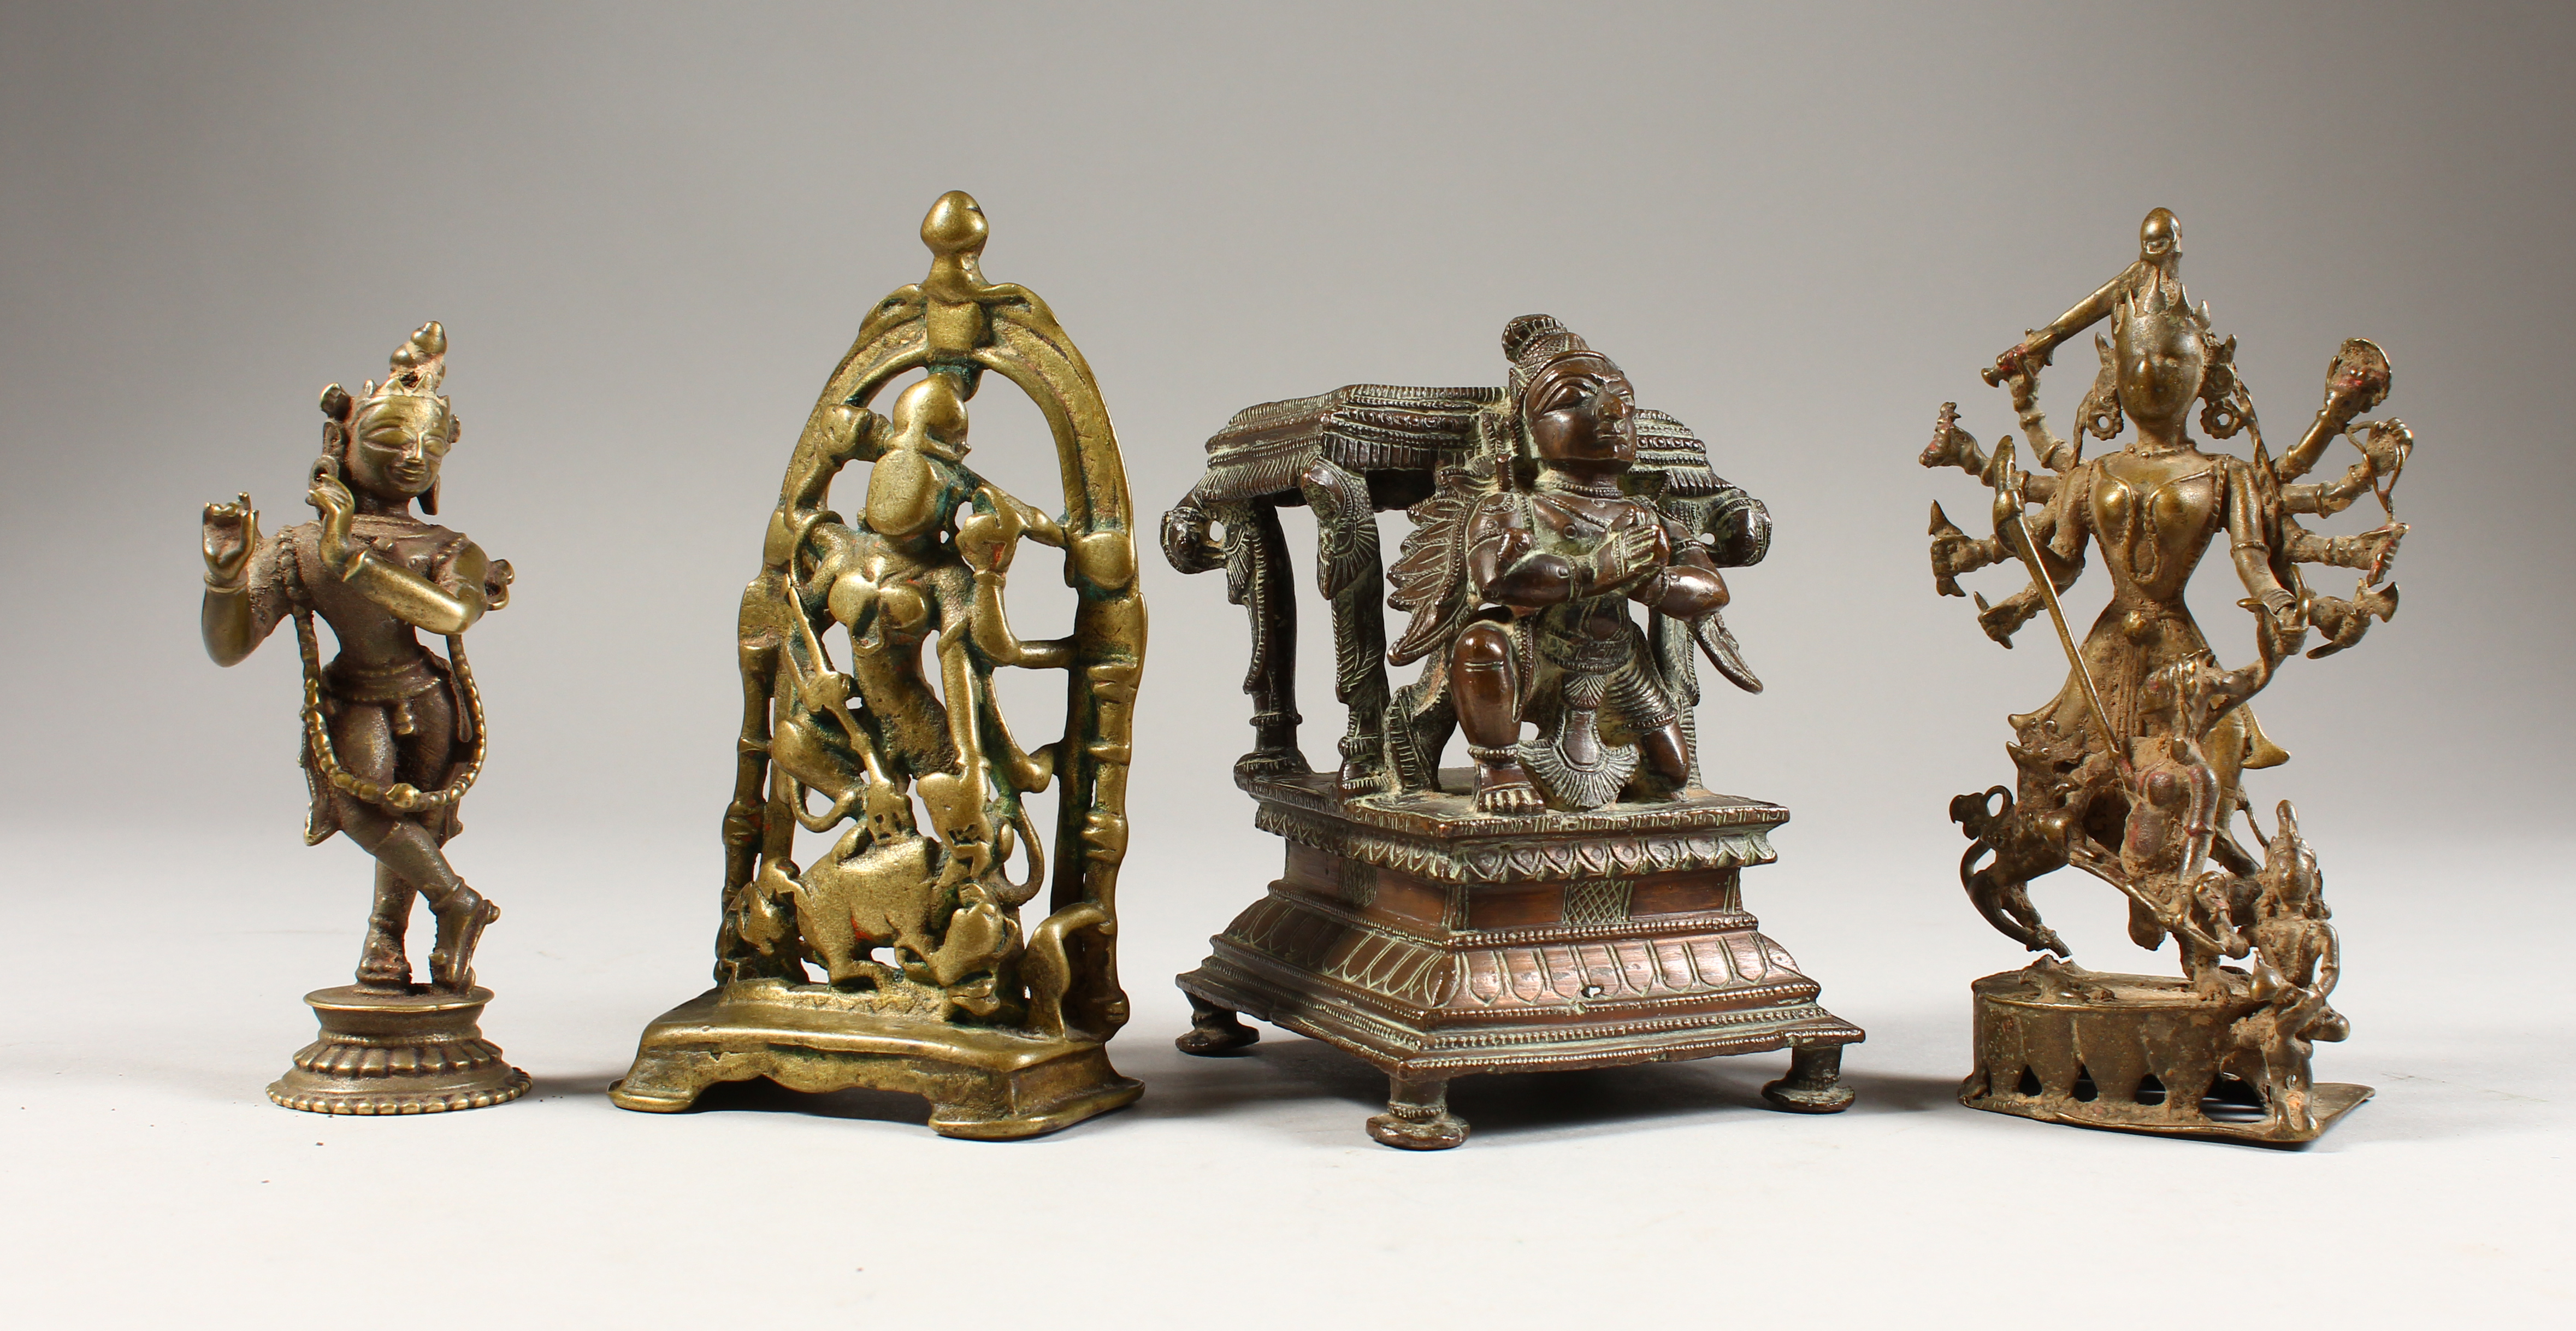 Four Hindu bronze images, India, 16th-19th centuries/Auctioneers and Valuers